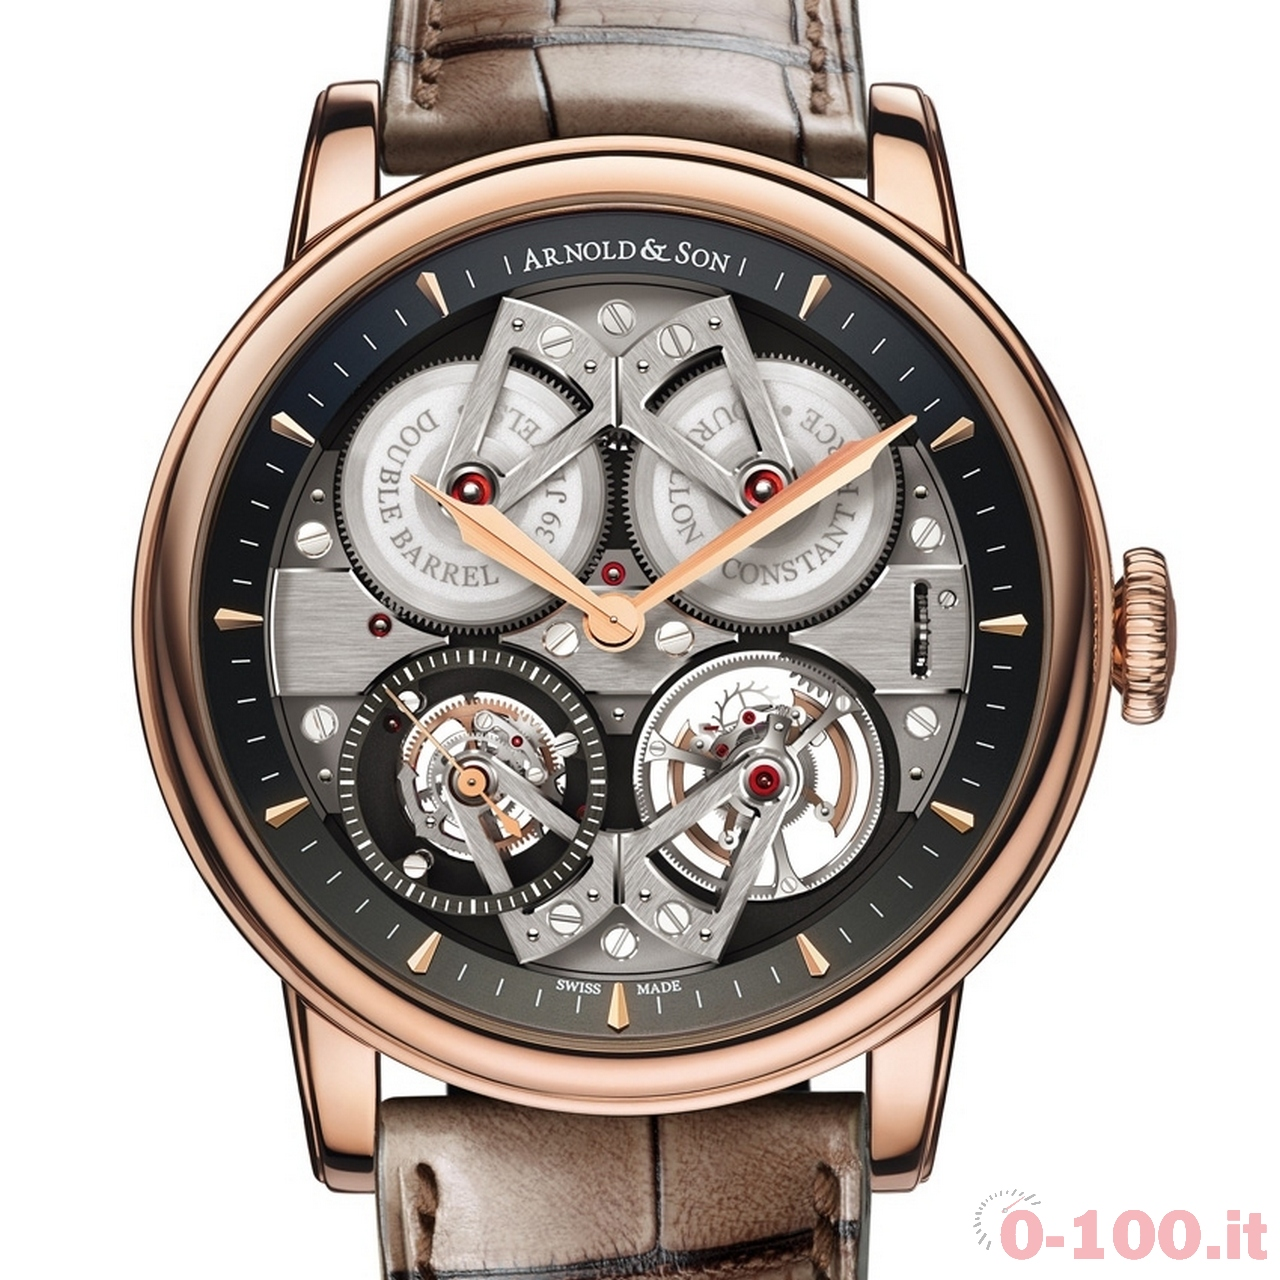 anteprima-baselworld-2016-arnold-son-constant-force-tourbillon-price_0-1002